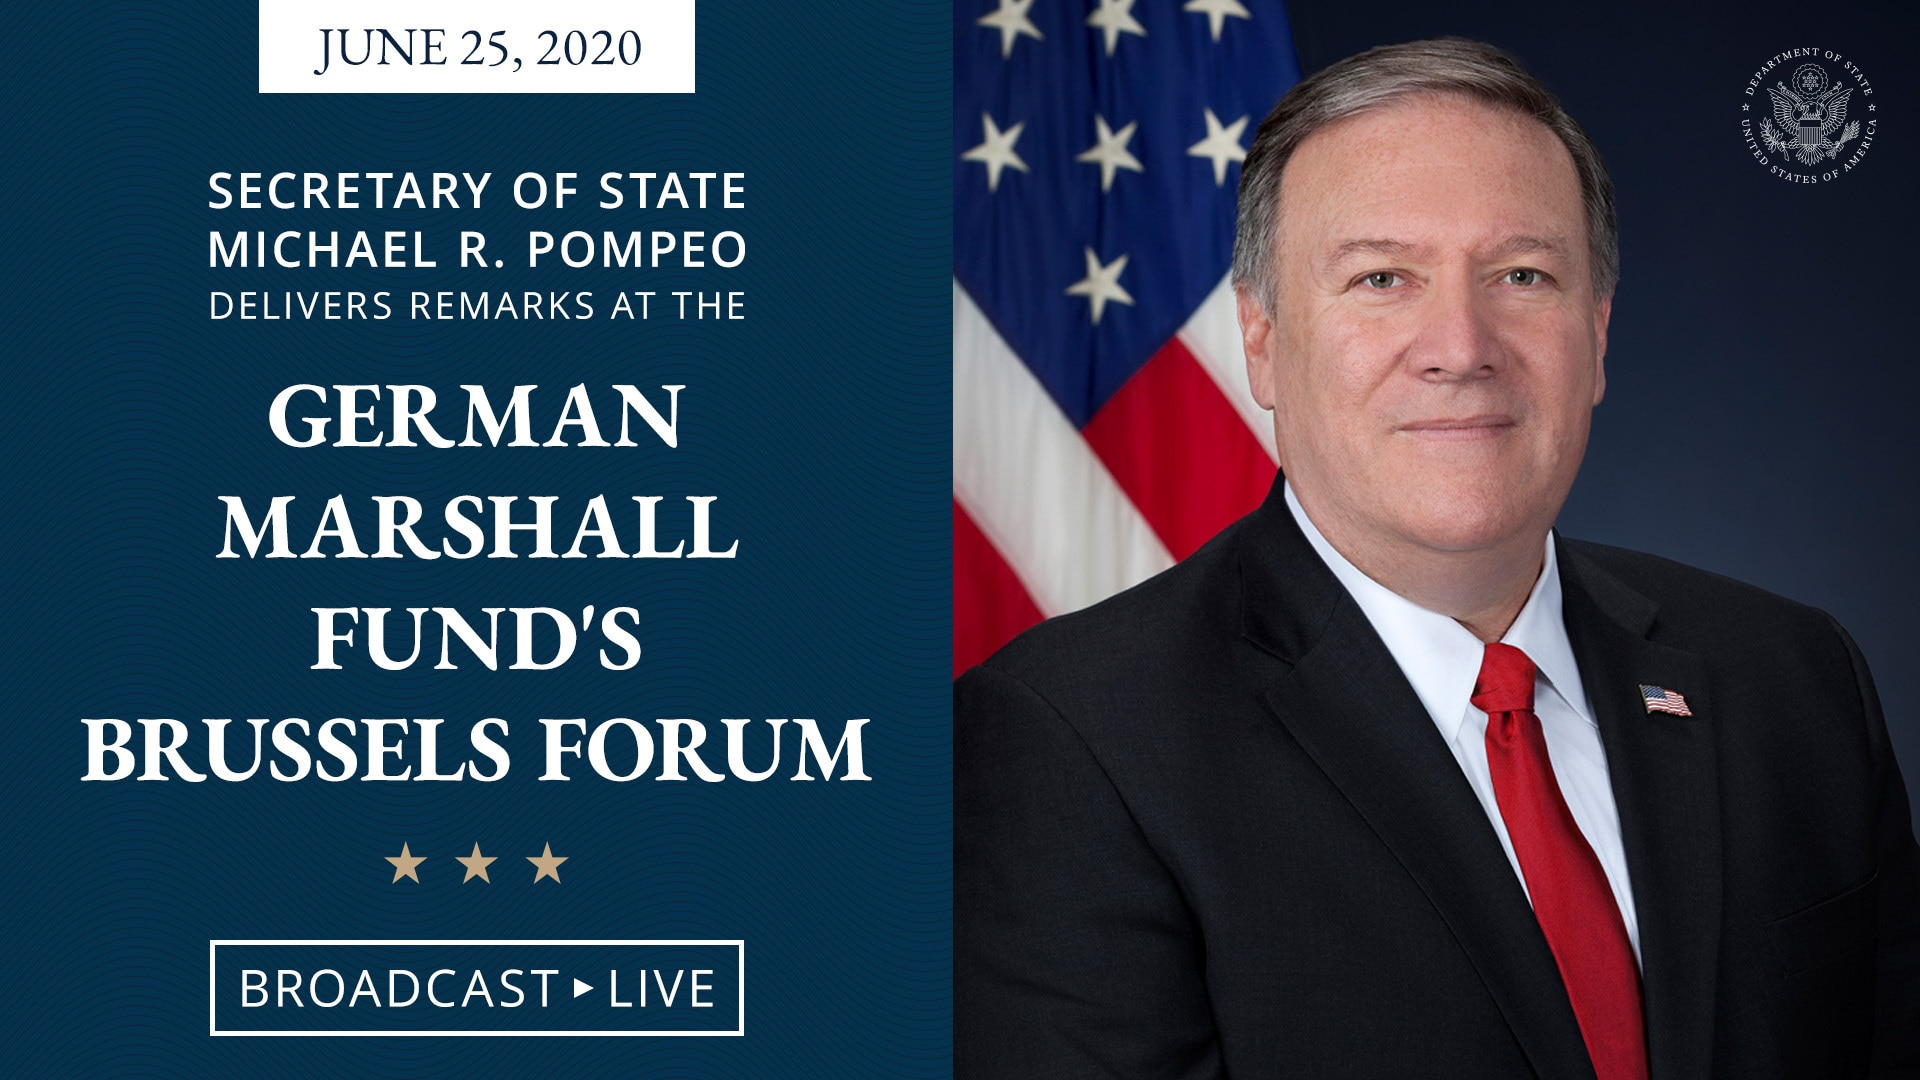 June 25, 2020: Secretary of State Michael R. Pompeo Delivers Remarks at the German Marshall Fund's Brussels Forum. Broadcast Live.